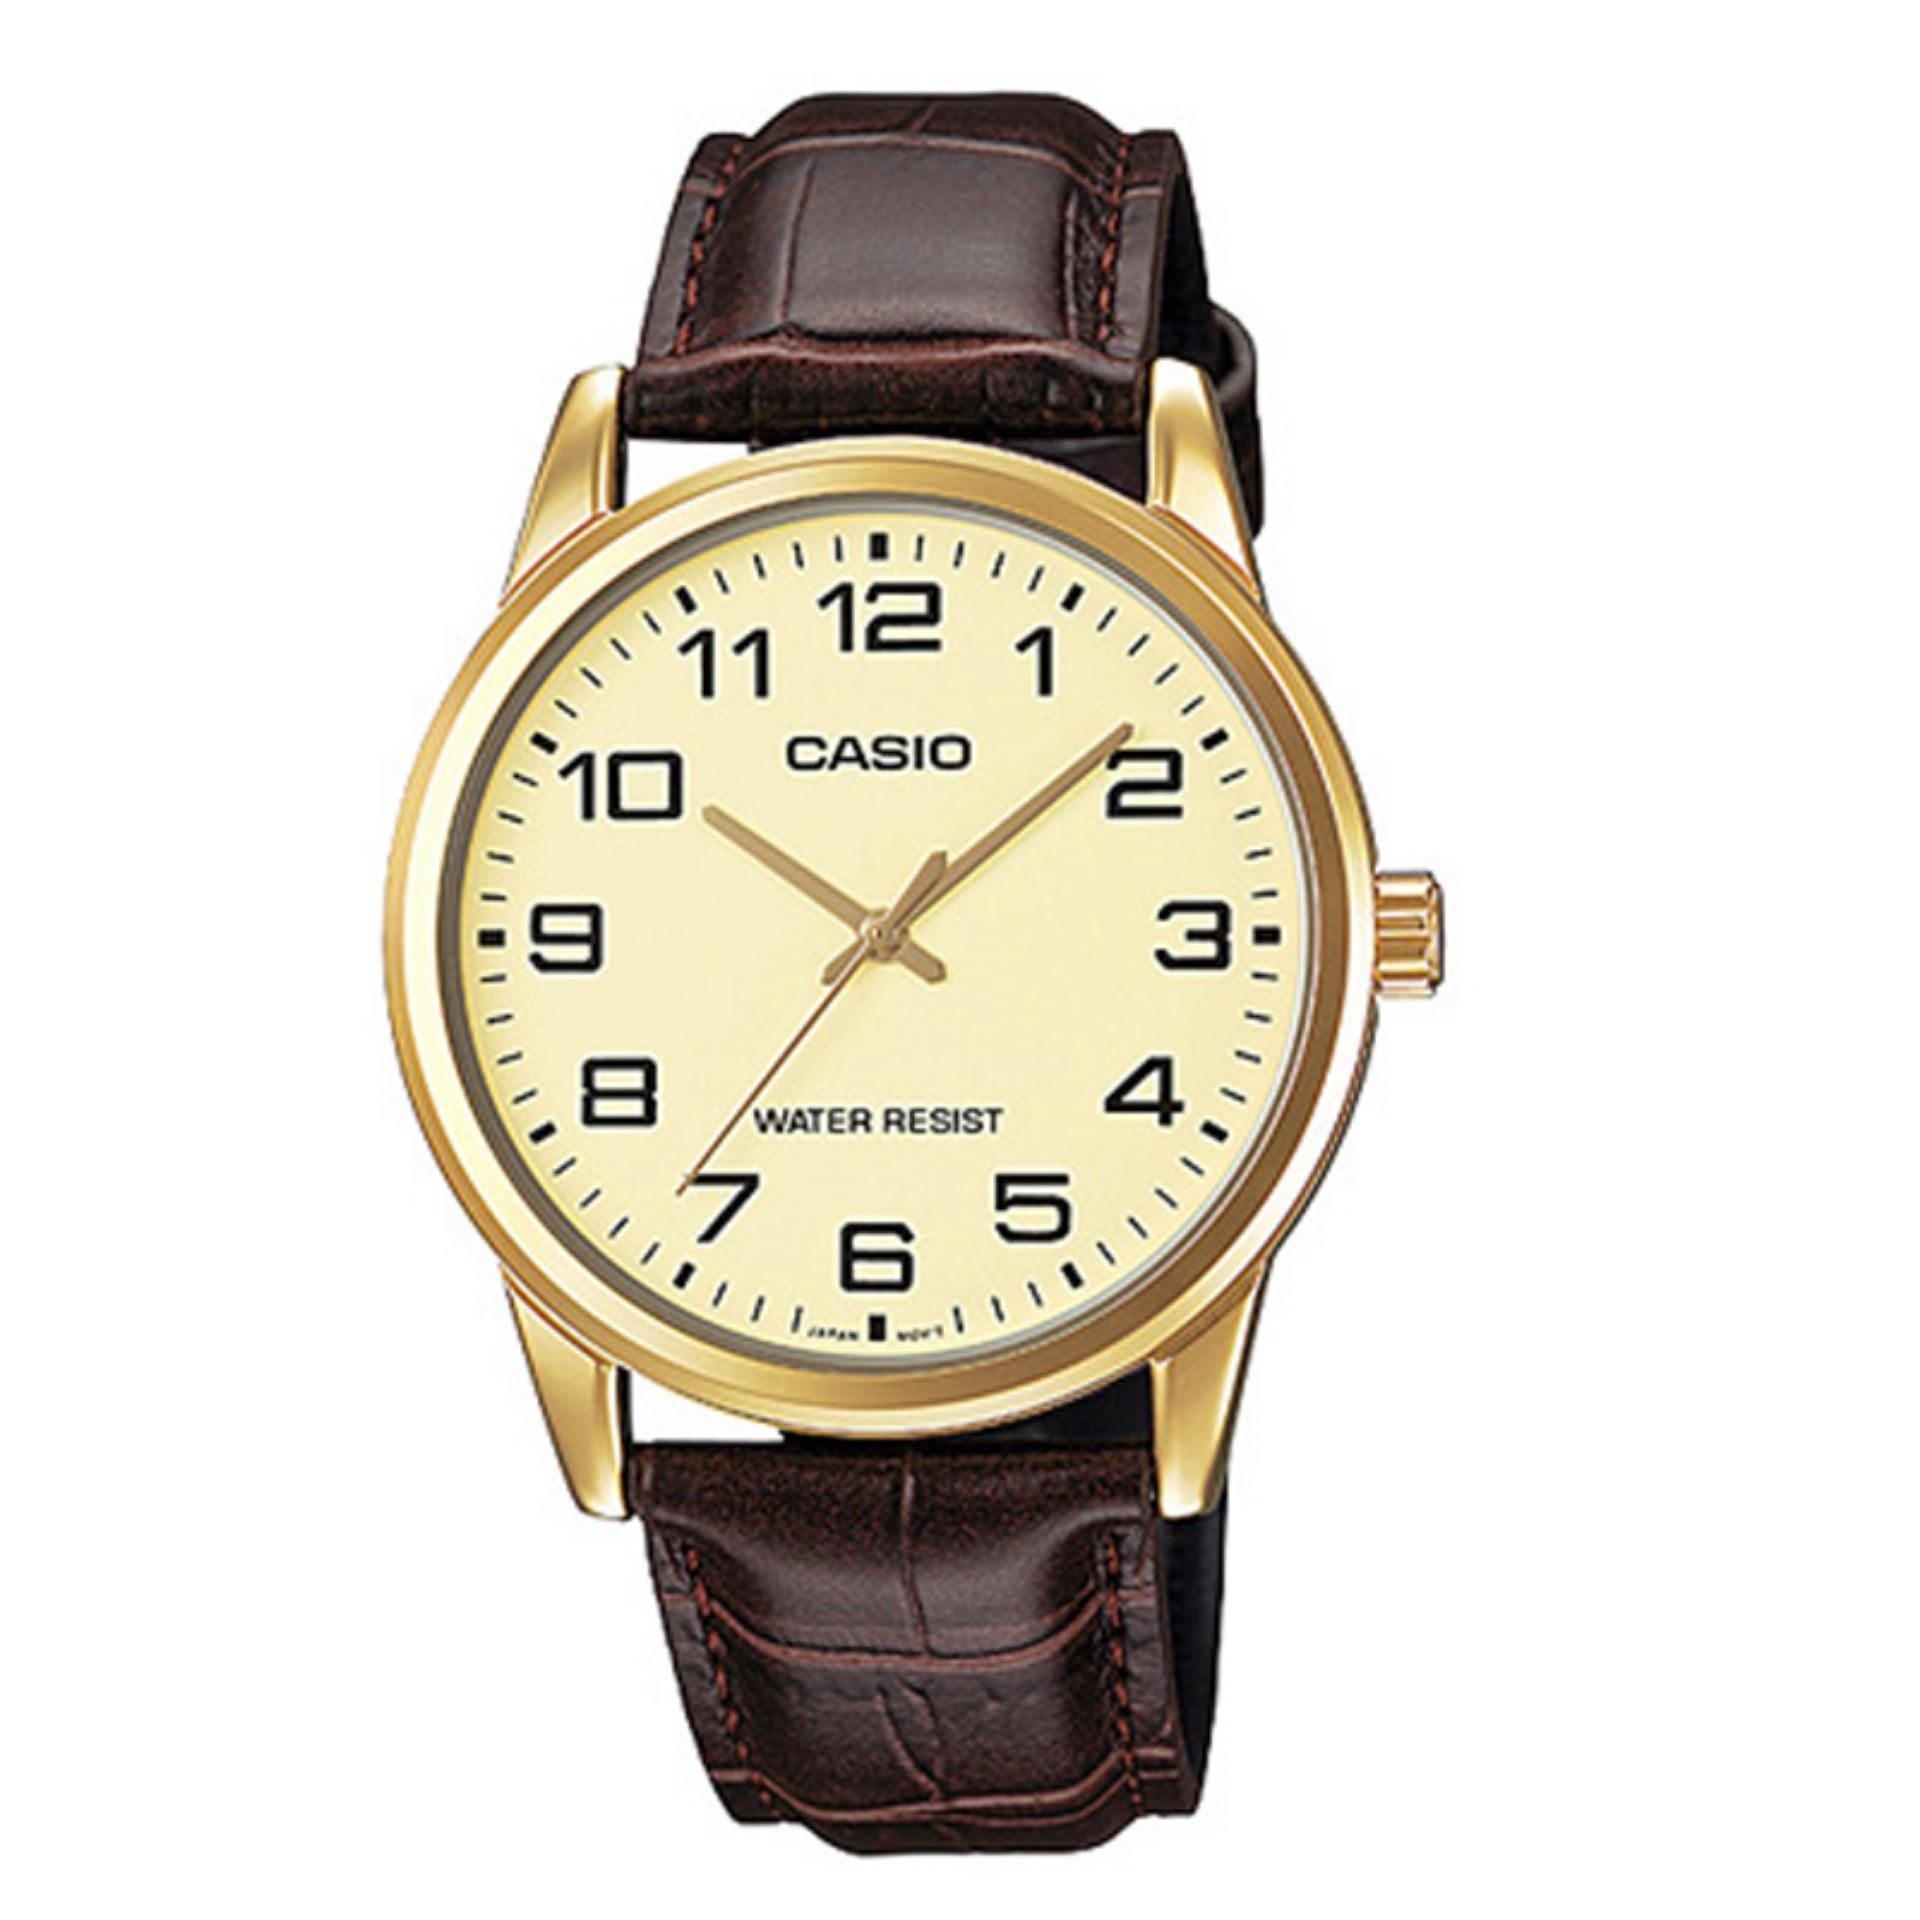 Casio Analog MTP-V001GL-9B - Jam Tangan Pria - Coklat - Leather Band